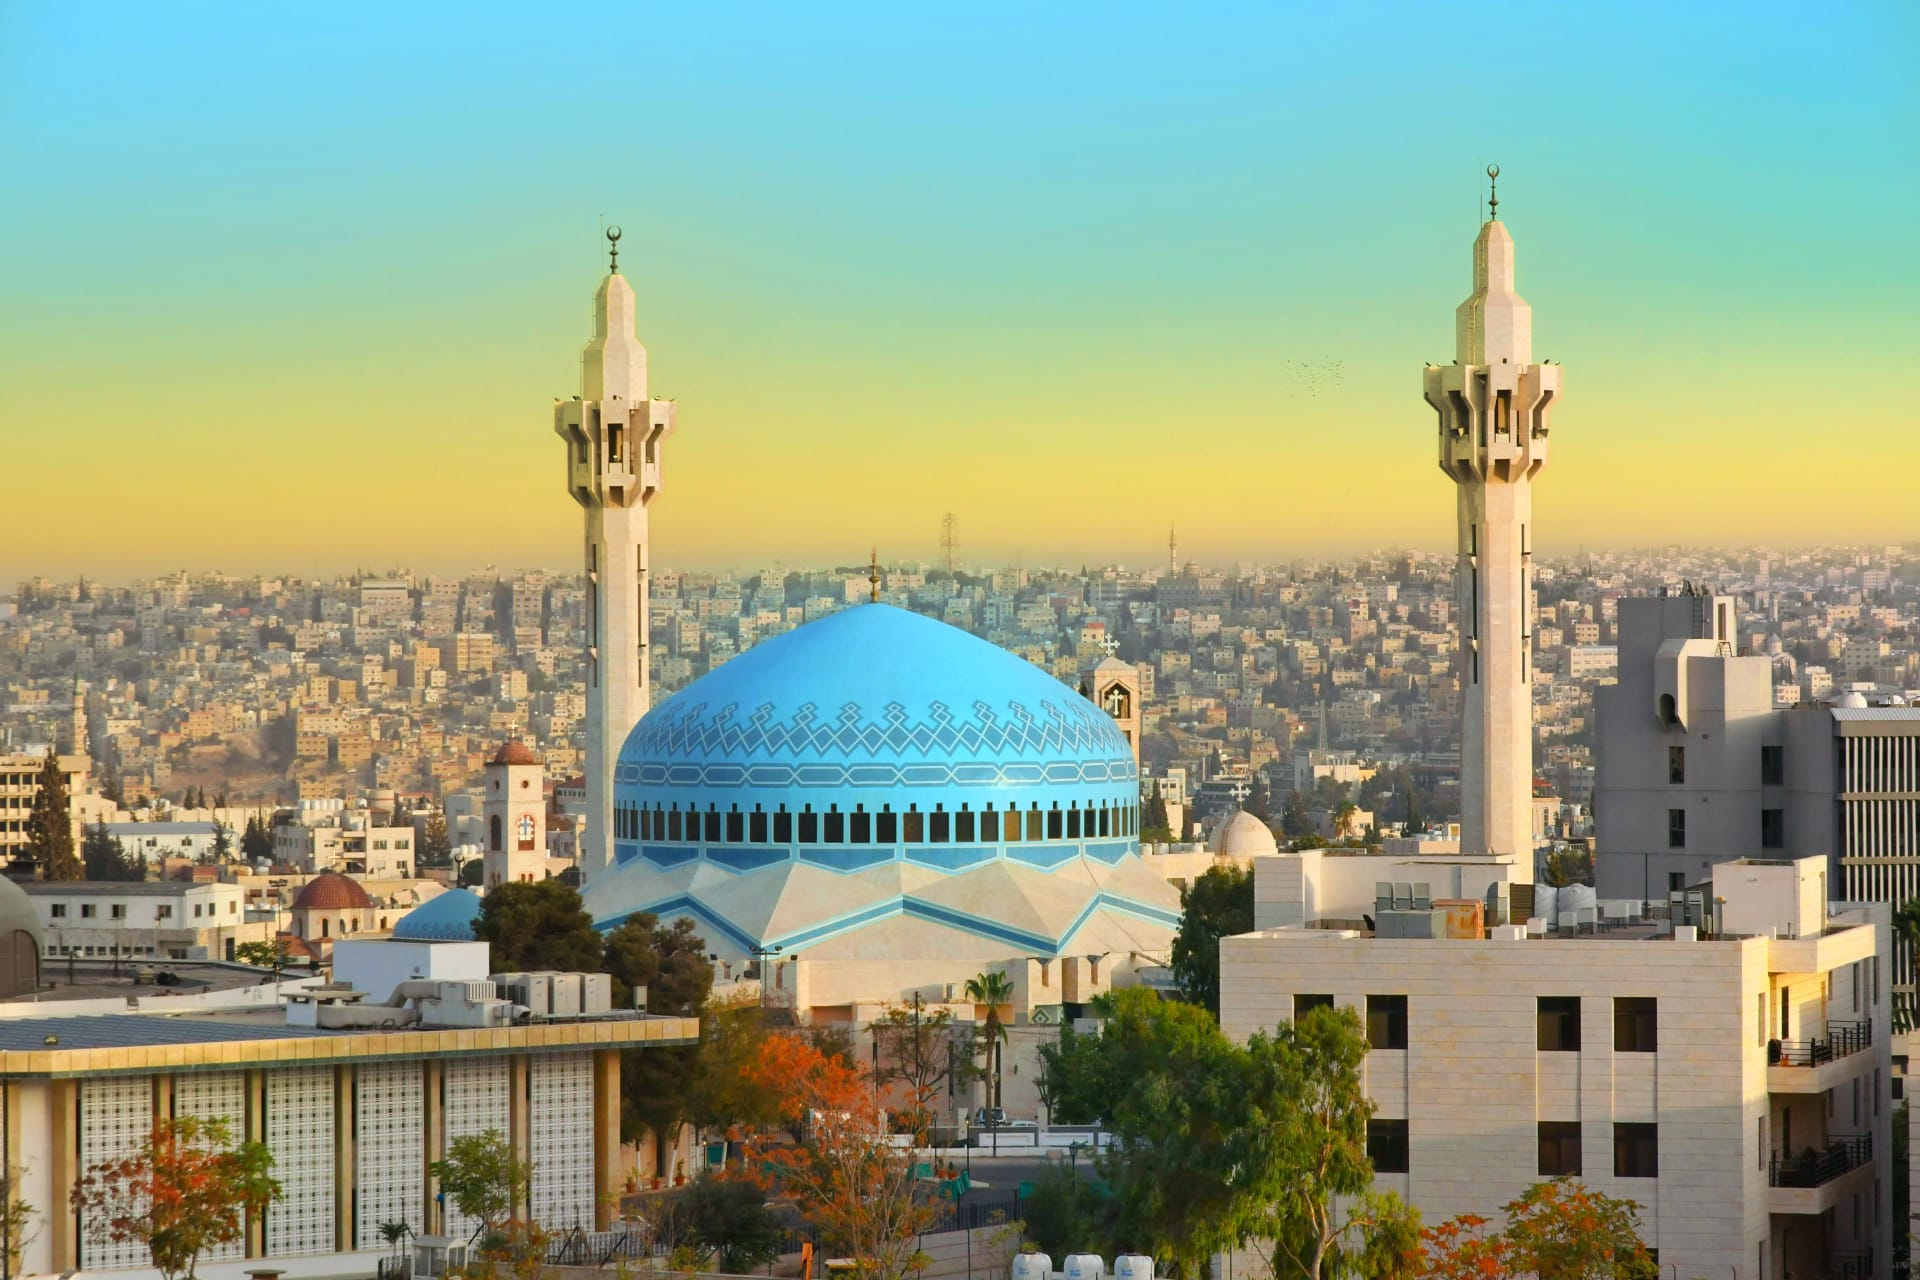 Amman cover image